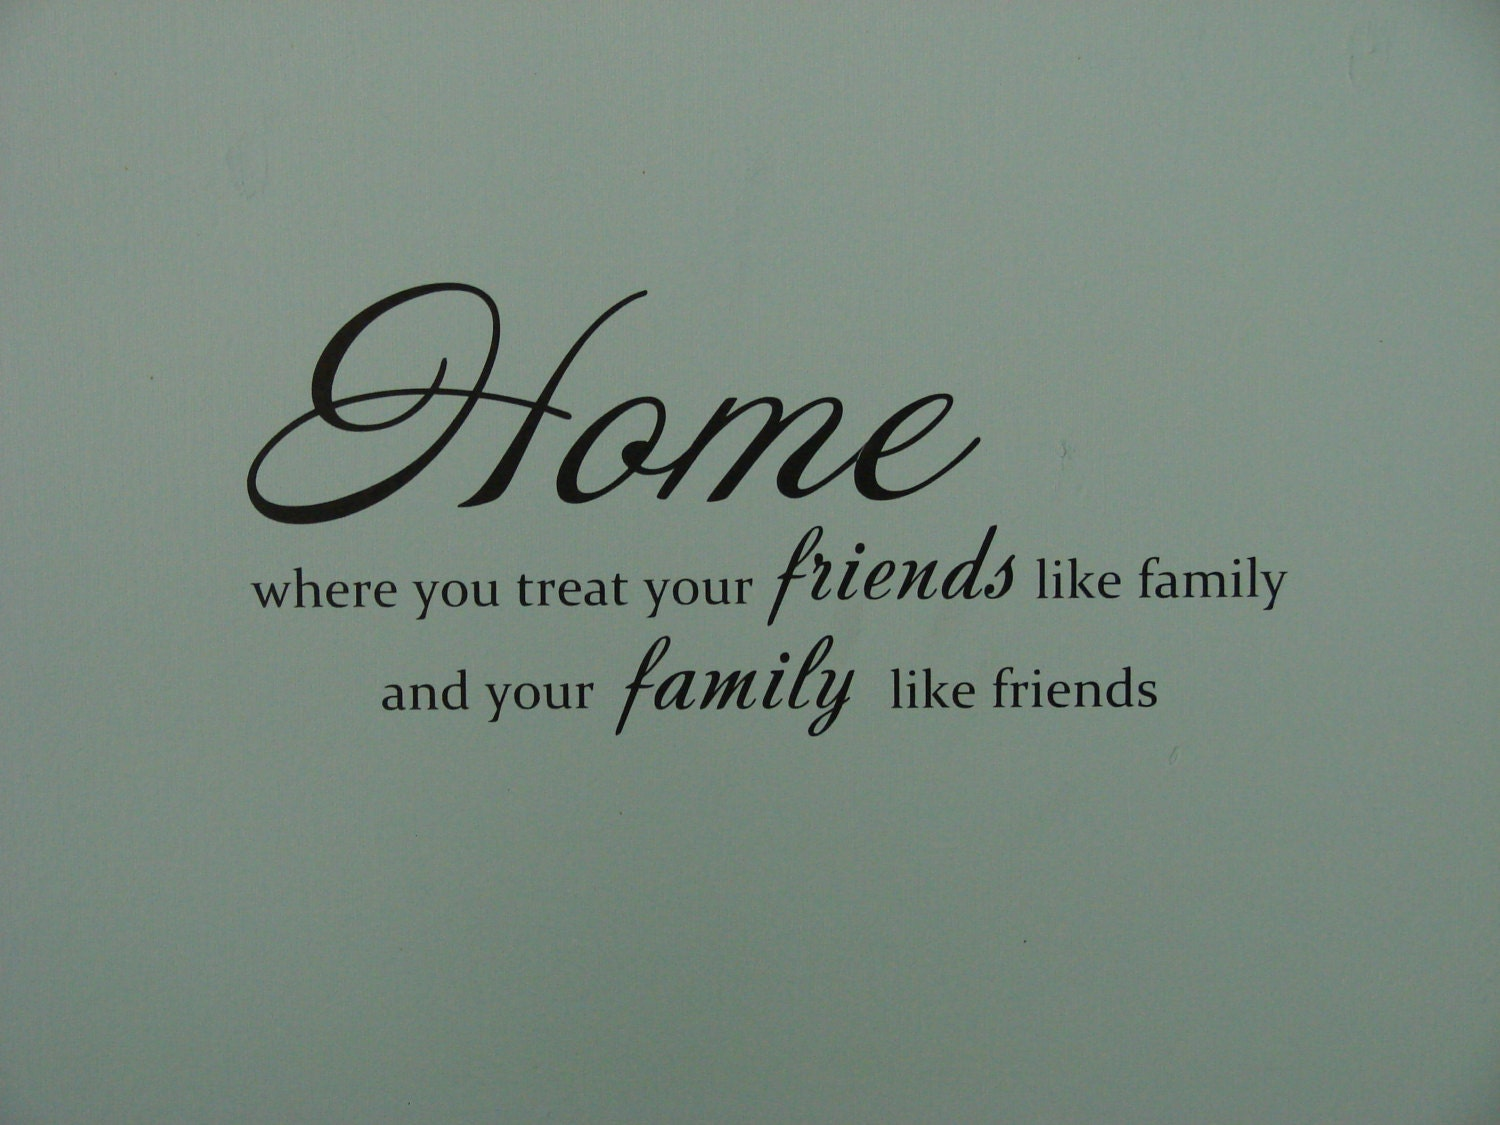 Quotes About Friendship And Family Quotes On Friendship Like Family Quotes About Friends Like Family